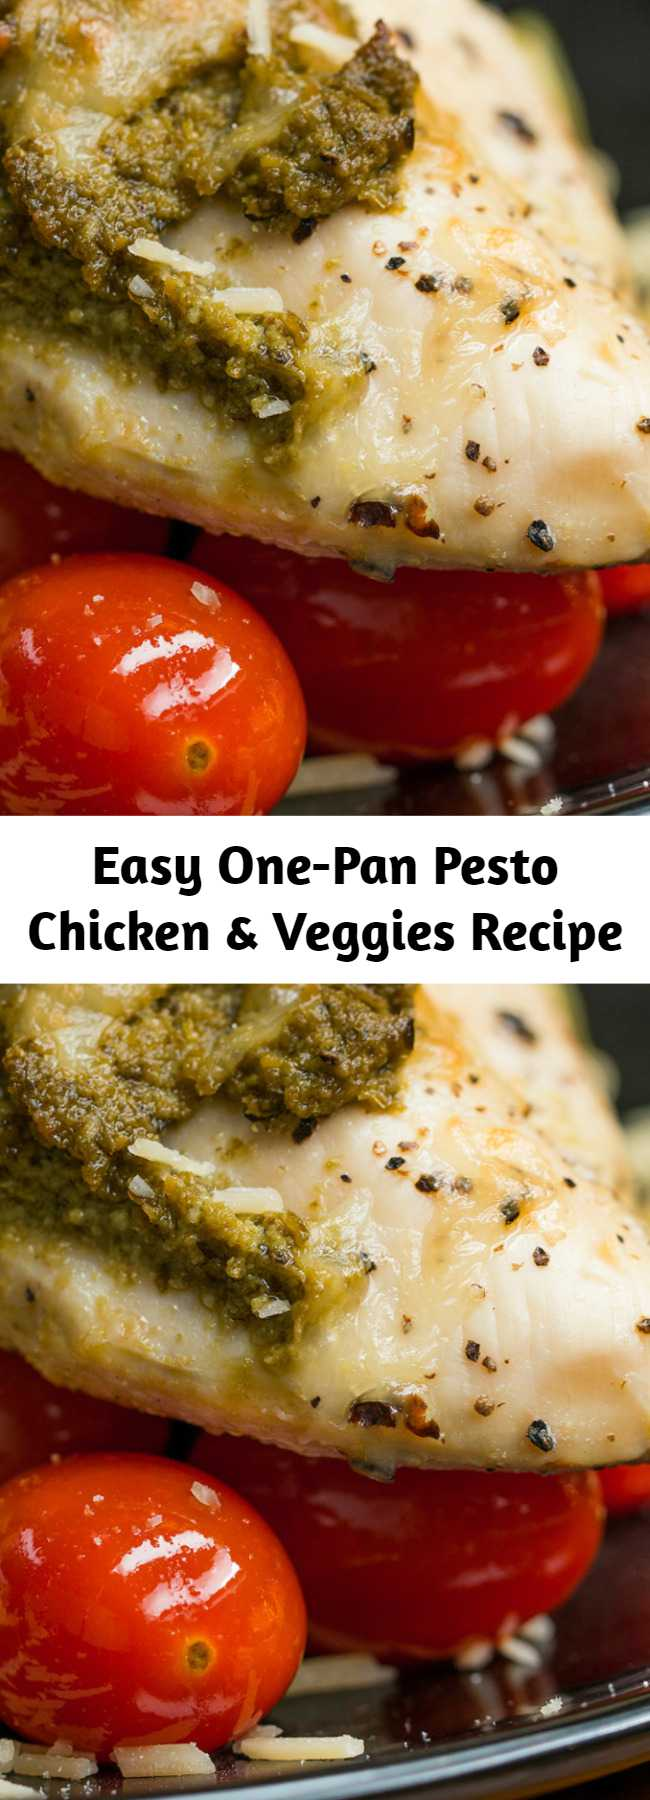 Easy One-Pan Pesto Chicken & Veggies Recipe - Here's a quick and easy dinner that is full of flavor!